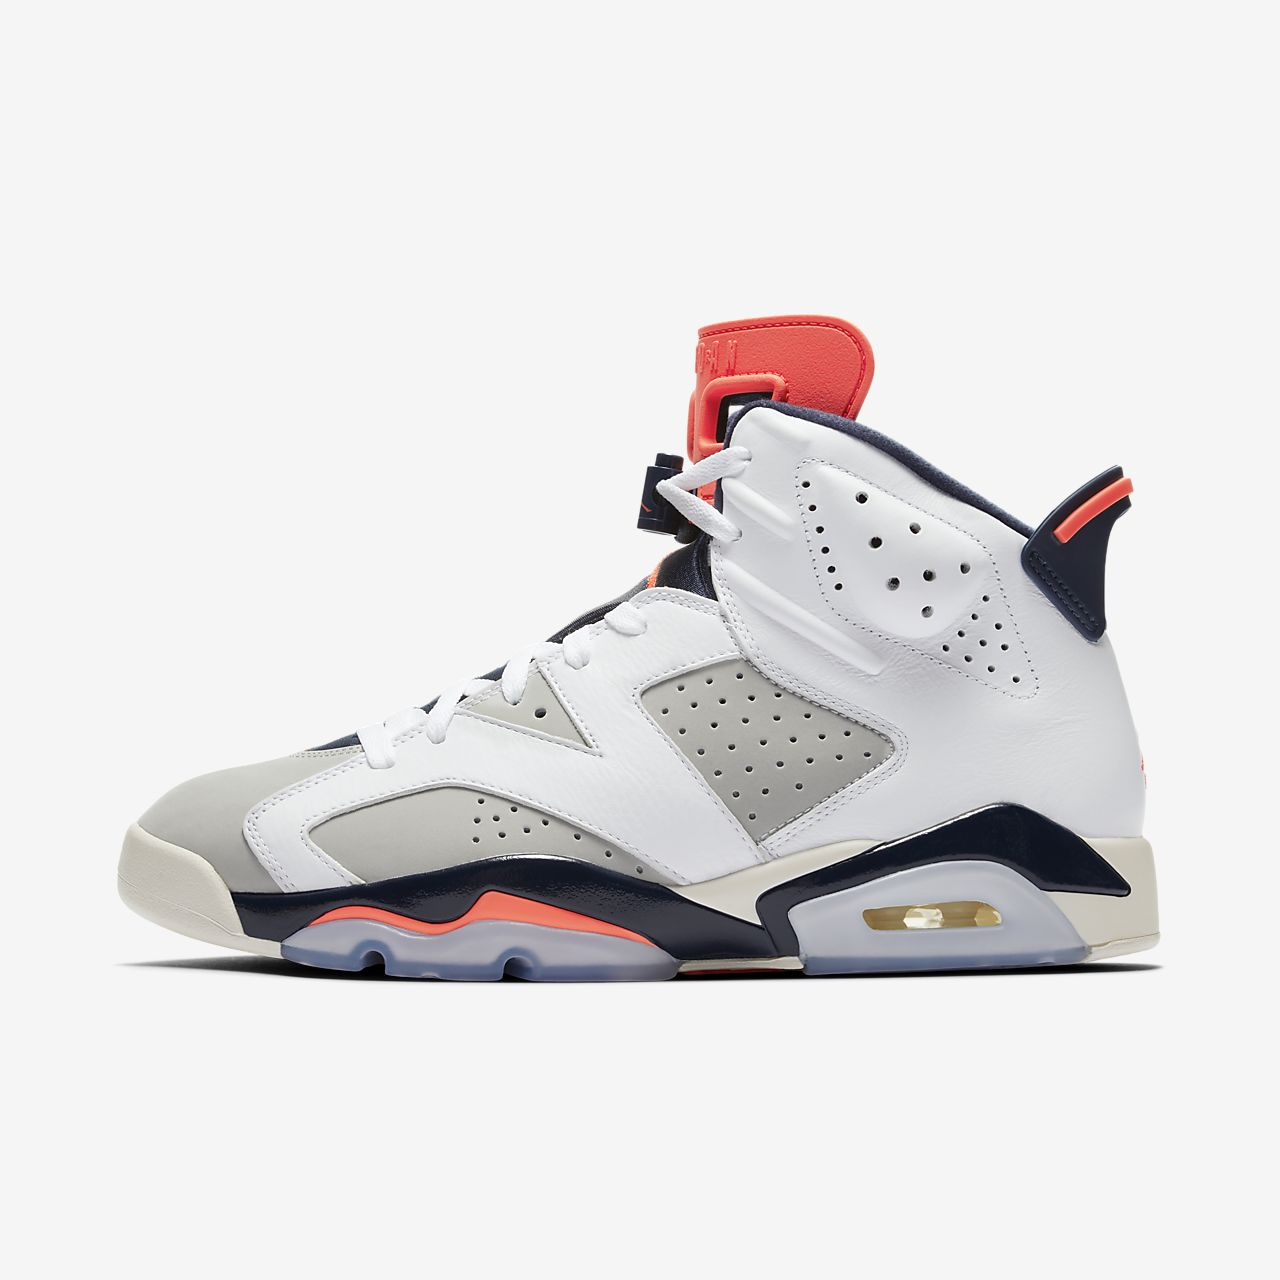 newest 0815a 8eb56 ... 3 sequoia max orange 958bec f63b7 f18fb  buy chaussure air jordan 6  retro pour homme 8f44a d6bde